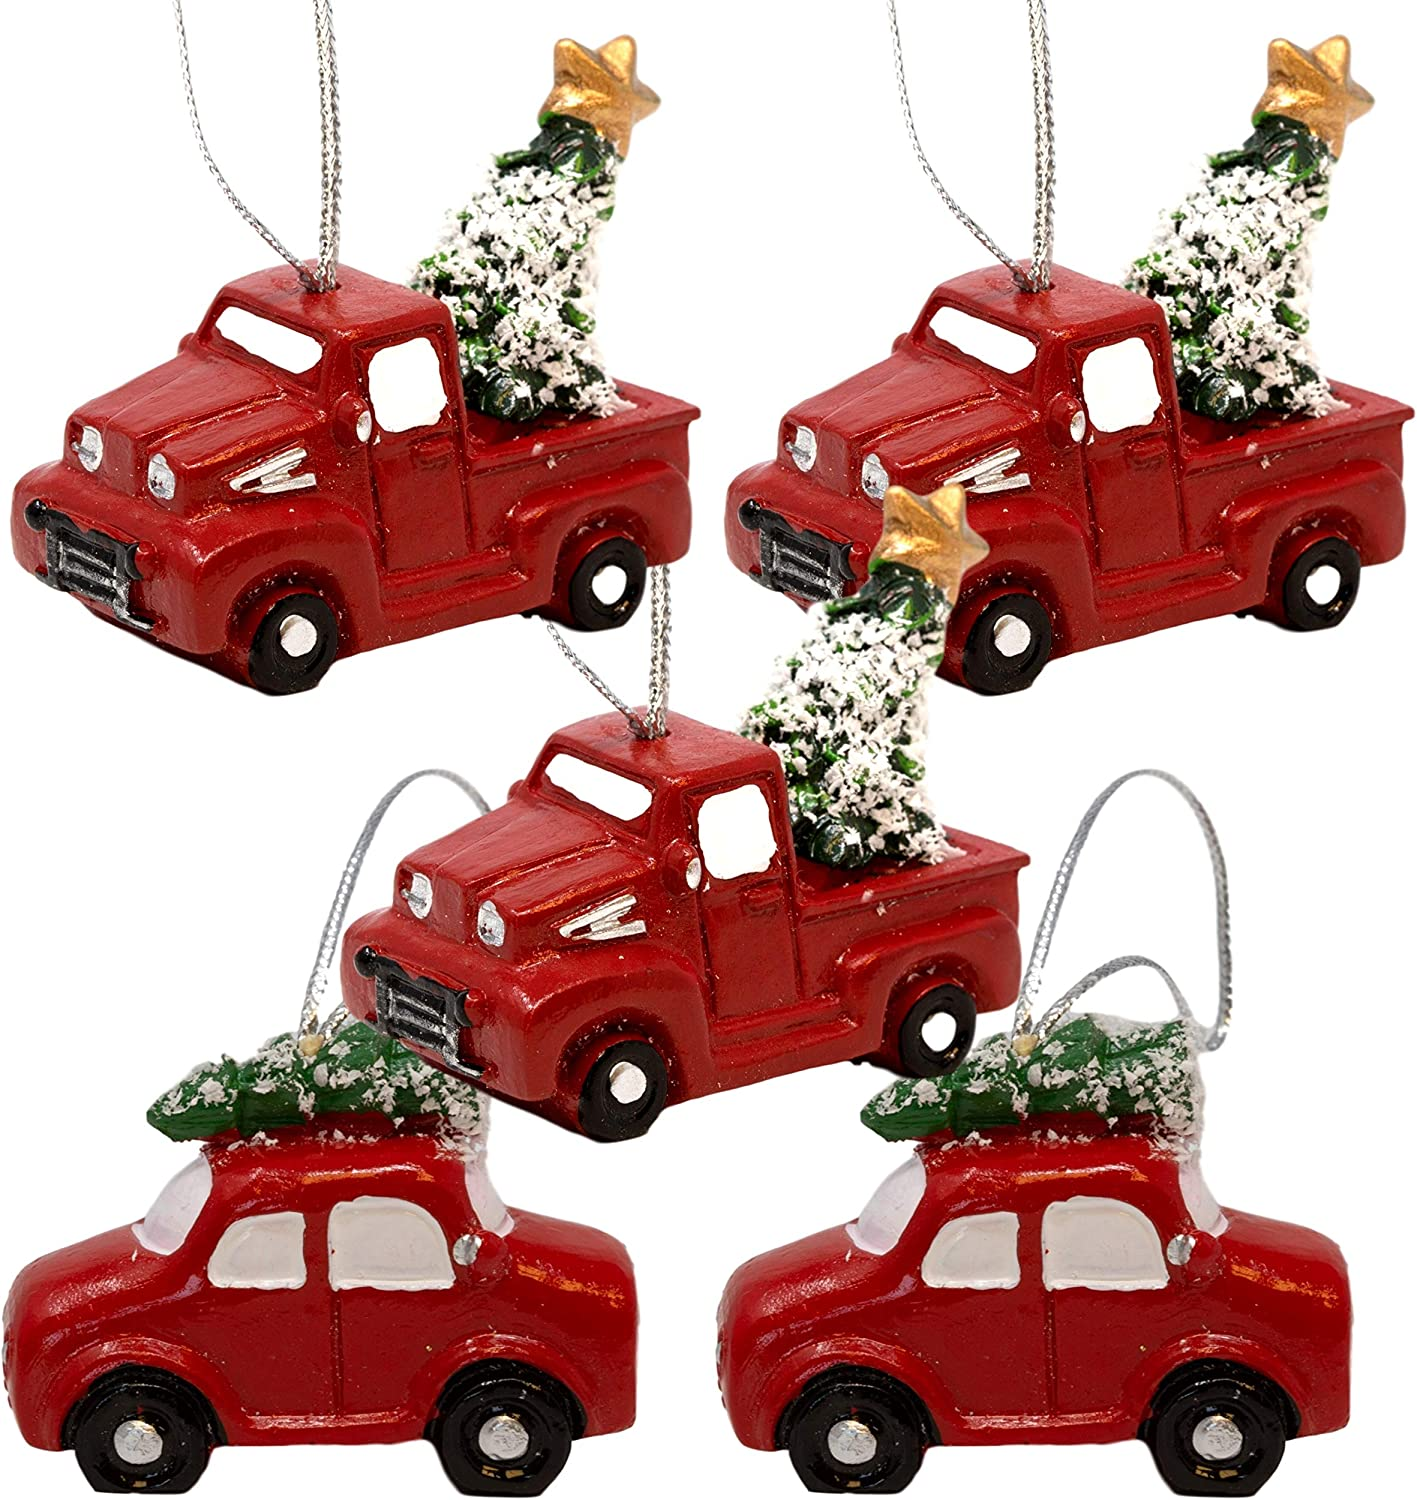 BANBERRY DESIGNS Red Truck Christmas Decorations - 3 Pickup Trucks and 2 Cars Carrying Christmas Trees for The Holidays - Vintage Farmhouse Christmas Ornaments - Approx. 2 Inches